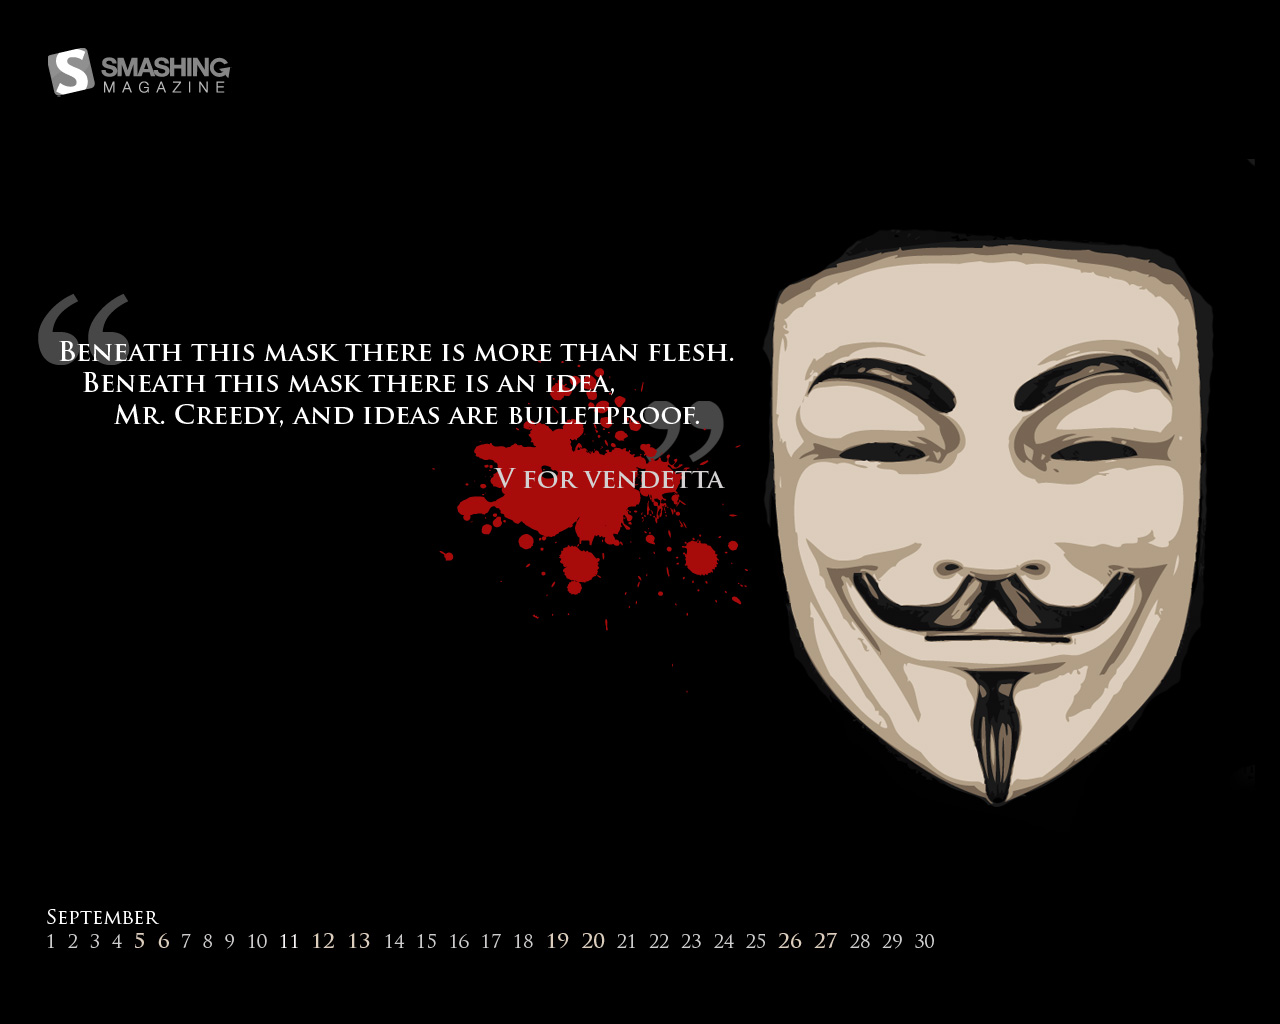 V for vendetta quotes